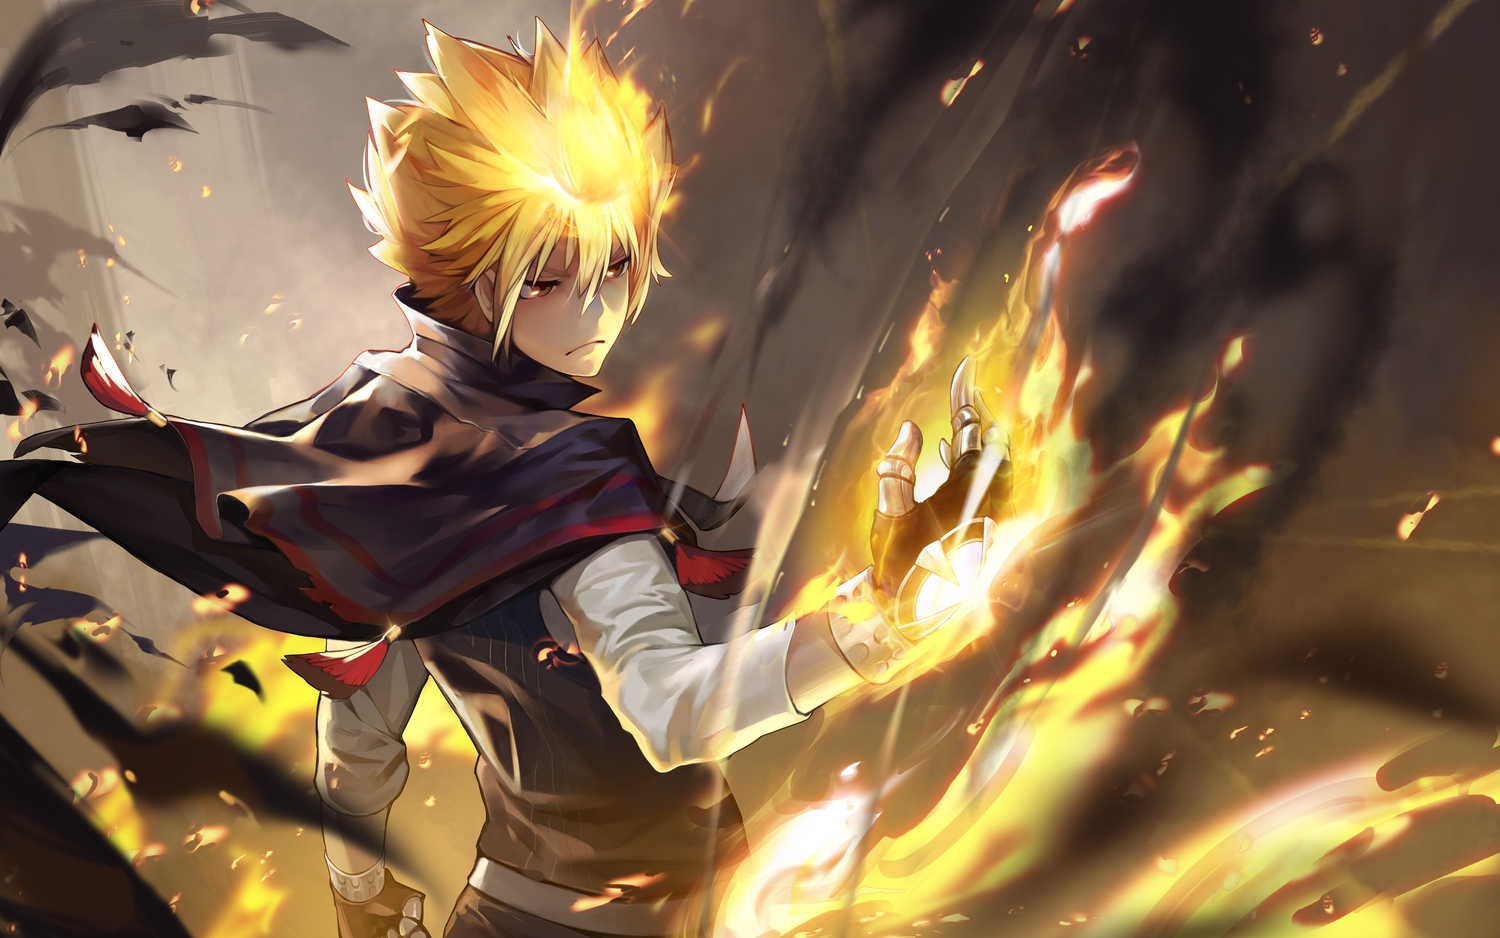 all_male blonde_hair cape fire giotto gloves katekyou_hitman_reborn male oop short_hair